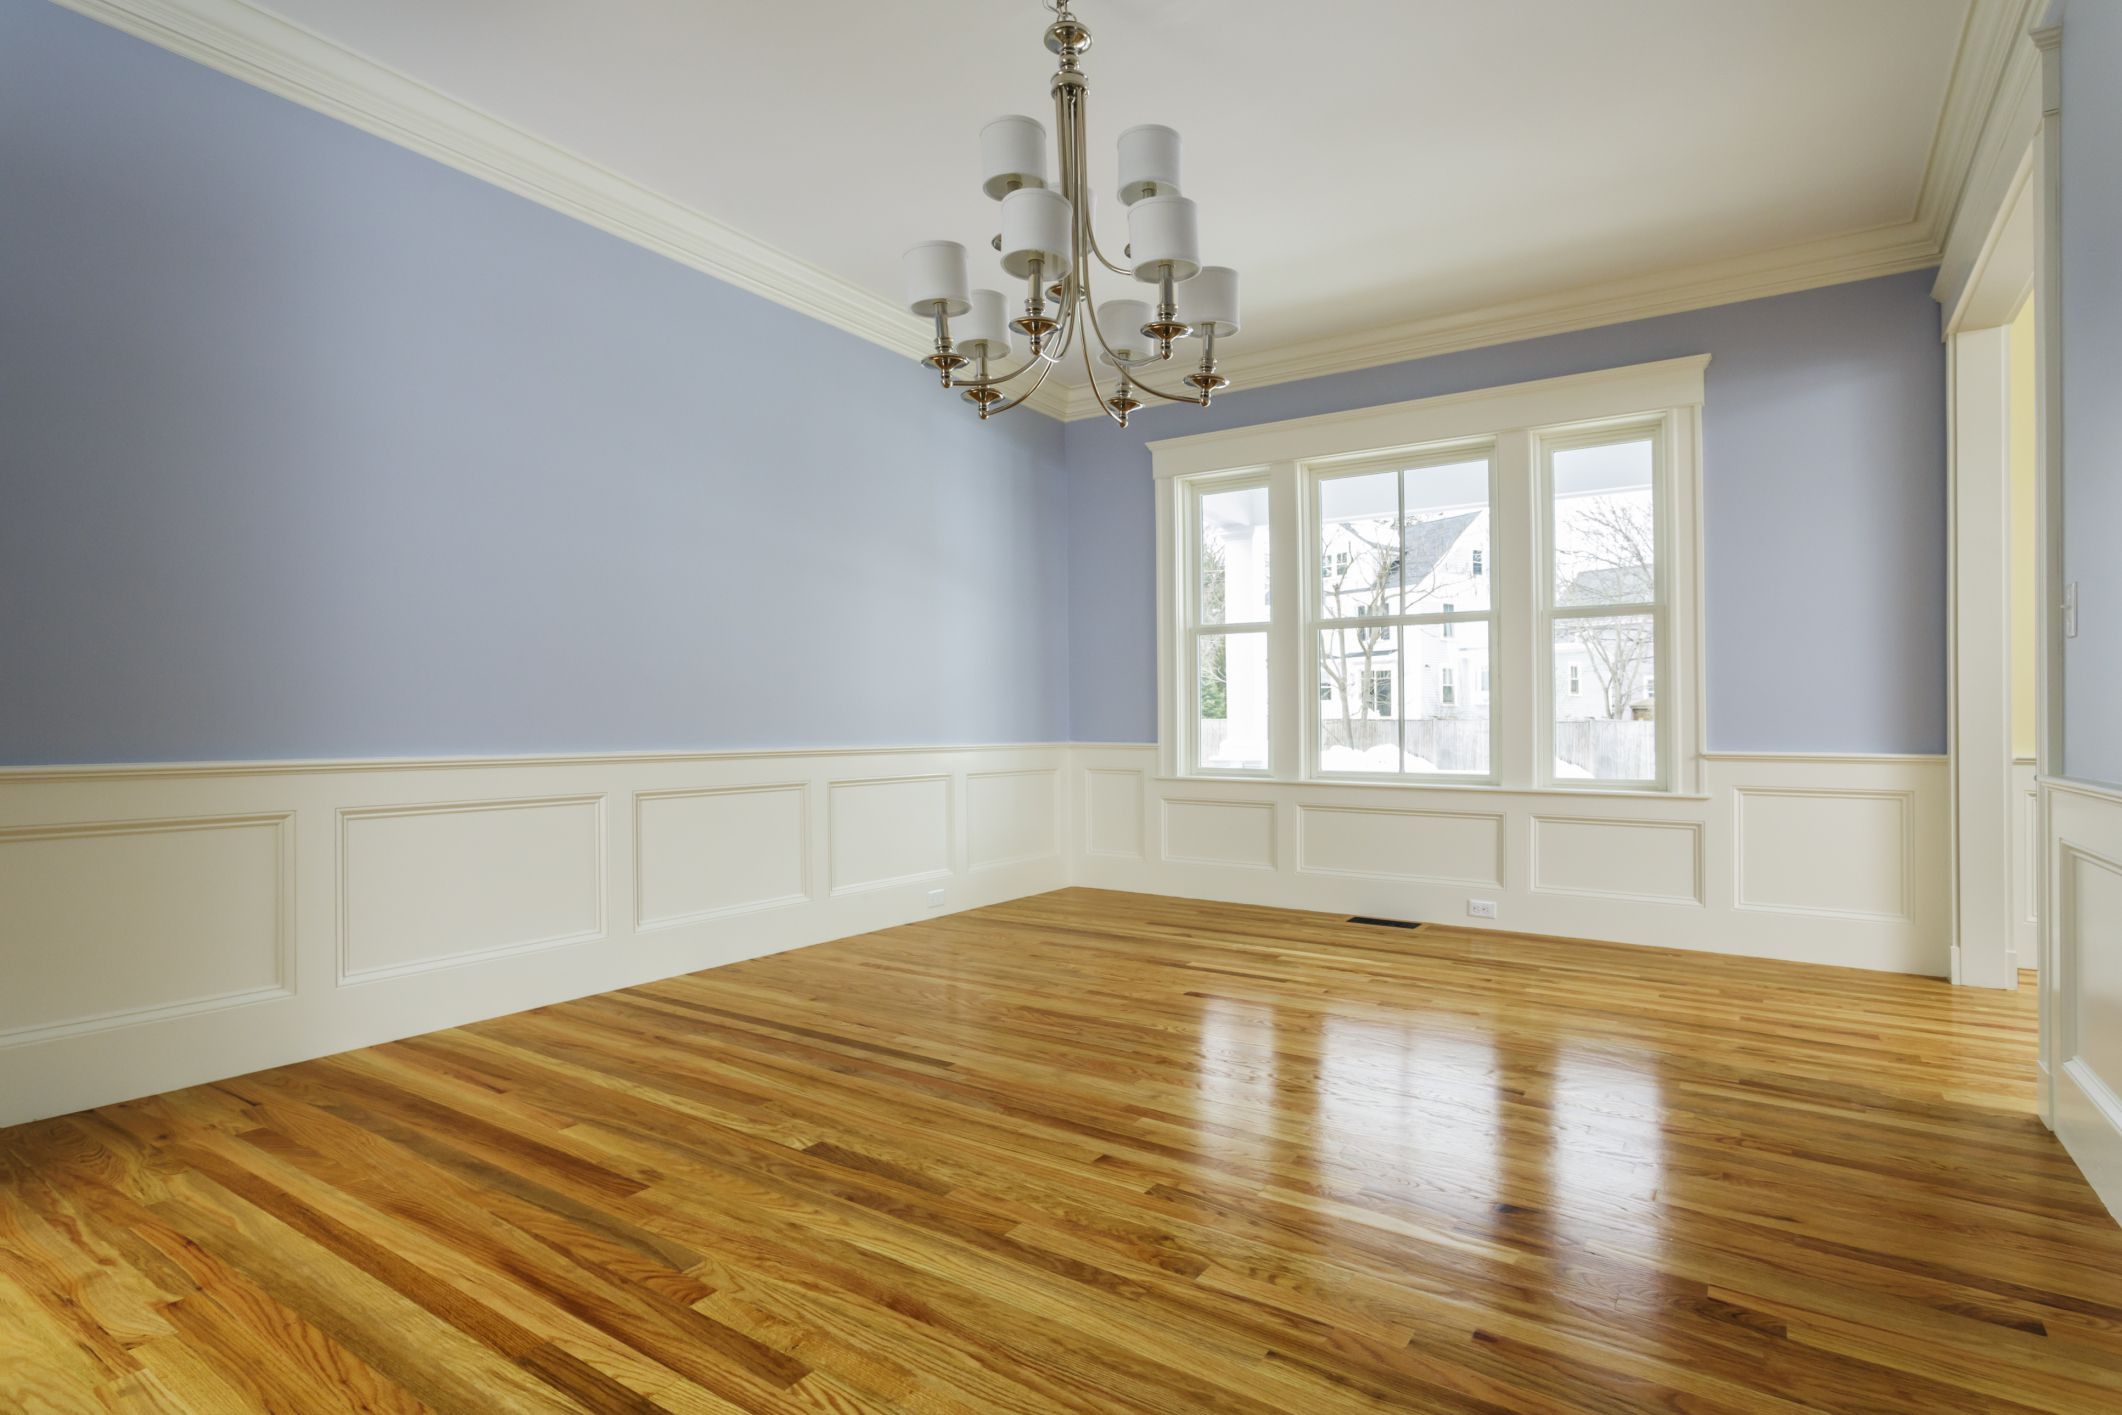 hardwood floor different color than stairs of the cost to refinish hardwood floors inside 168686572 highres 56a2fd773df78cf7727b6cb3